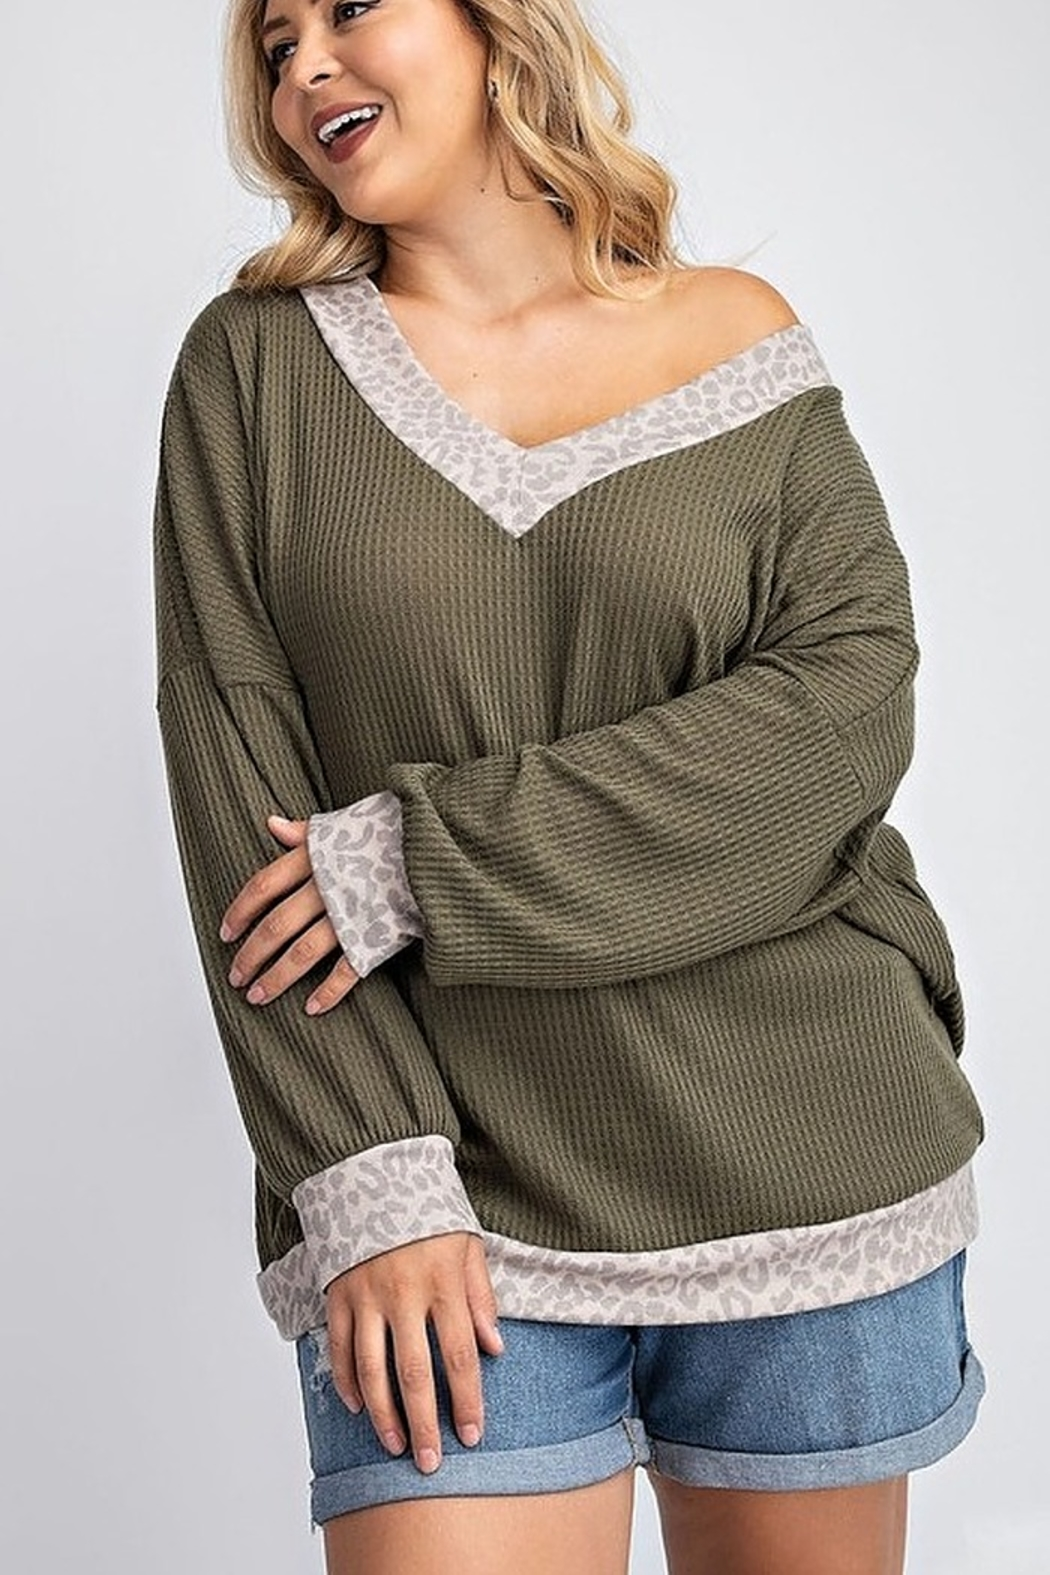 143 Story V NECK SLOUCHY WAFFLE KNIT TOP - Front Full Image